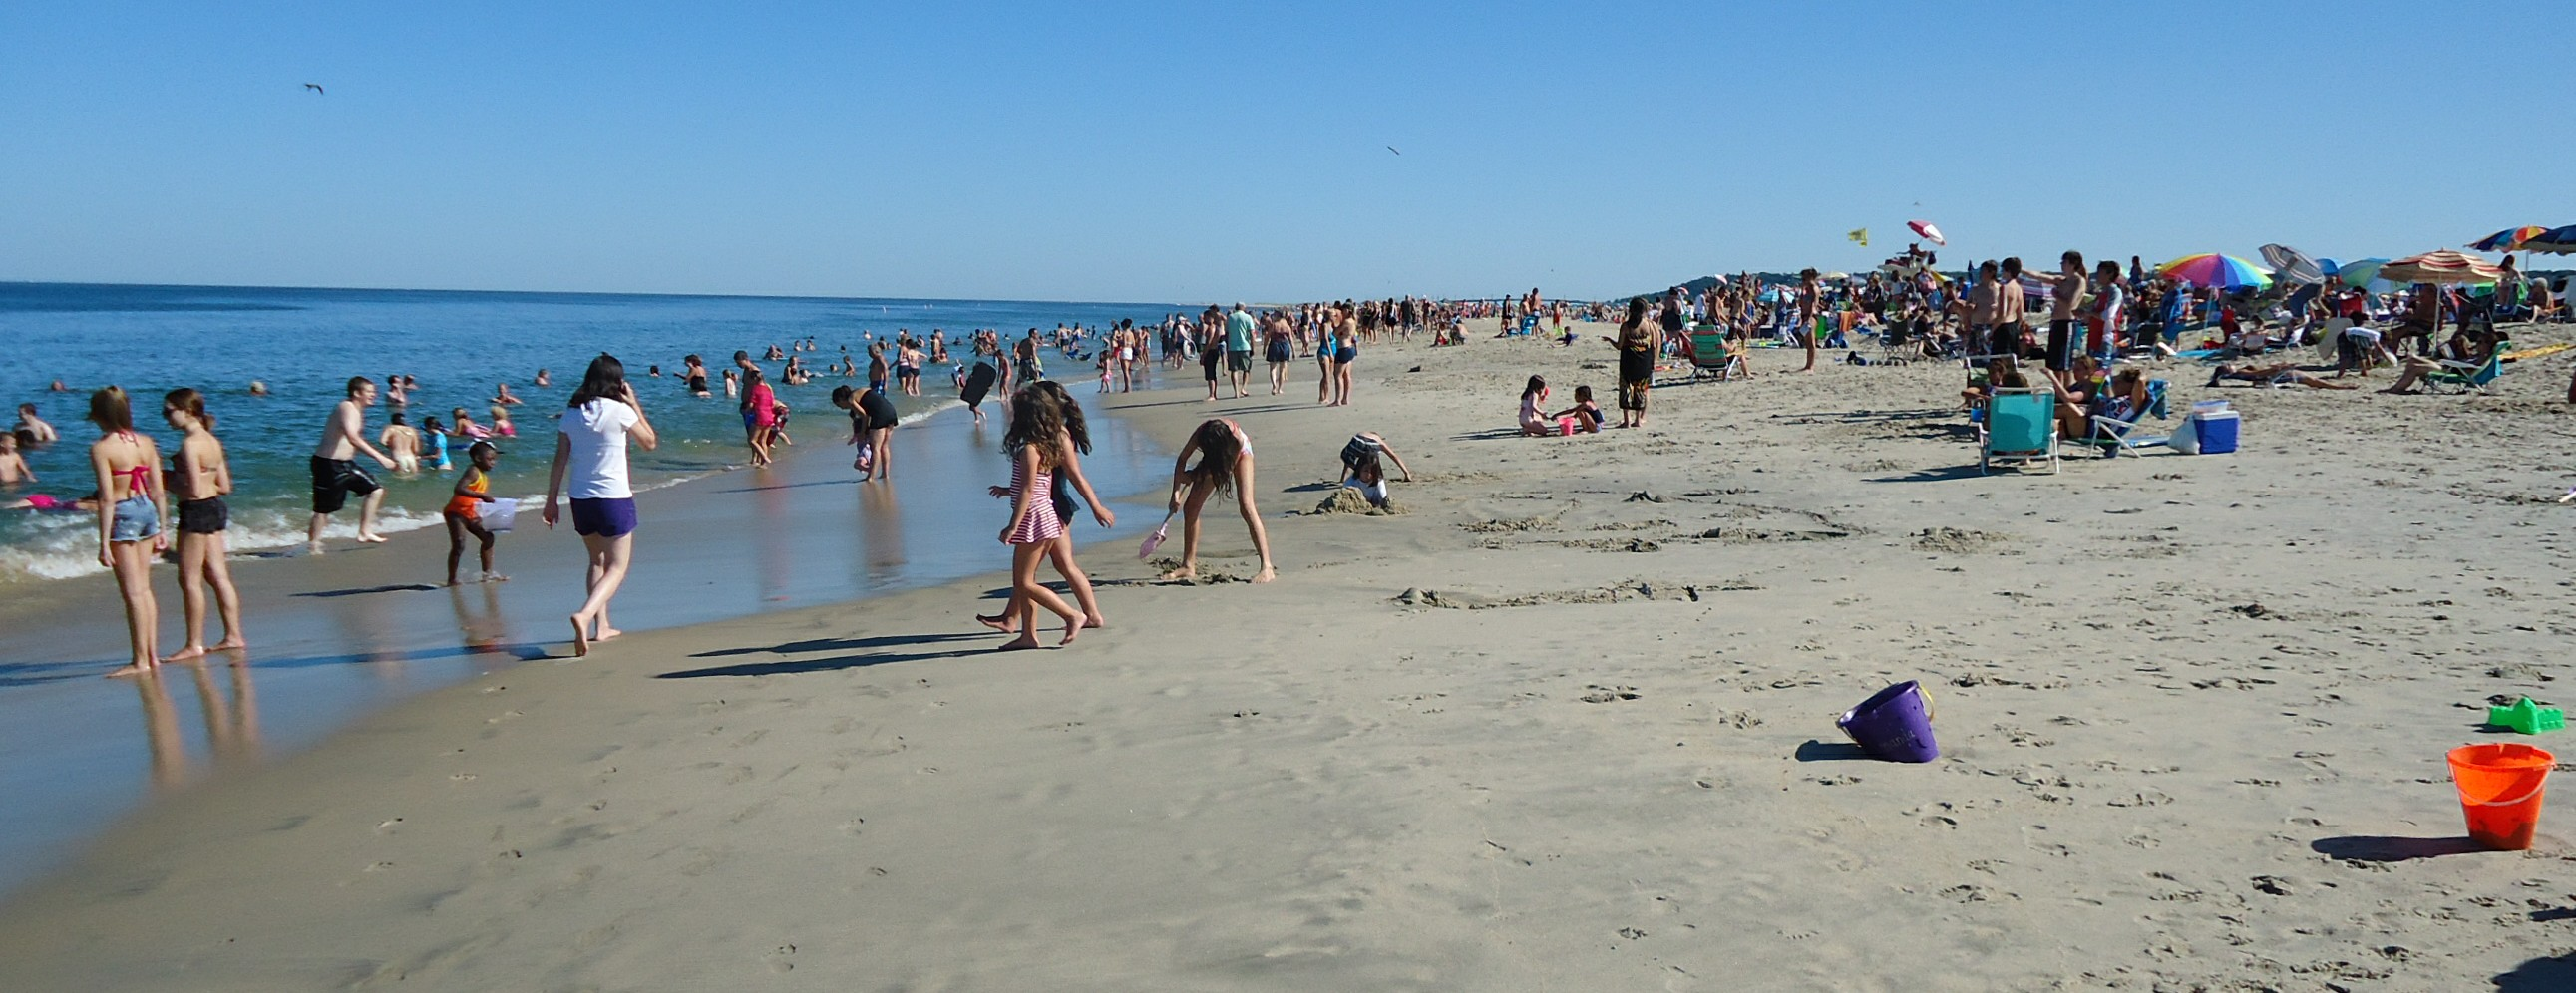 File Sandy Hook Nj Beach July Afternoon Jpg